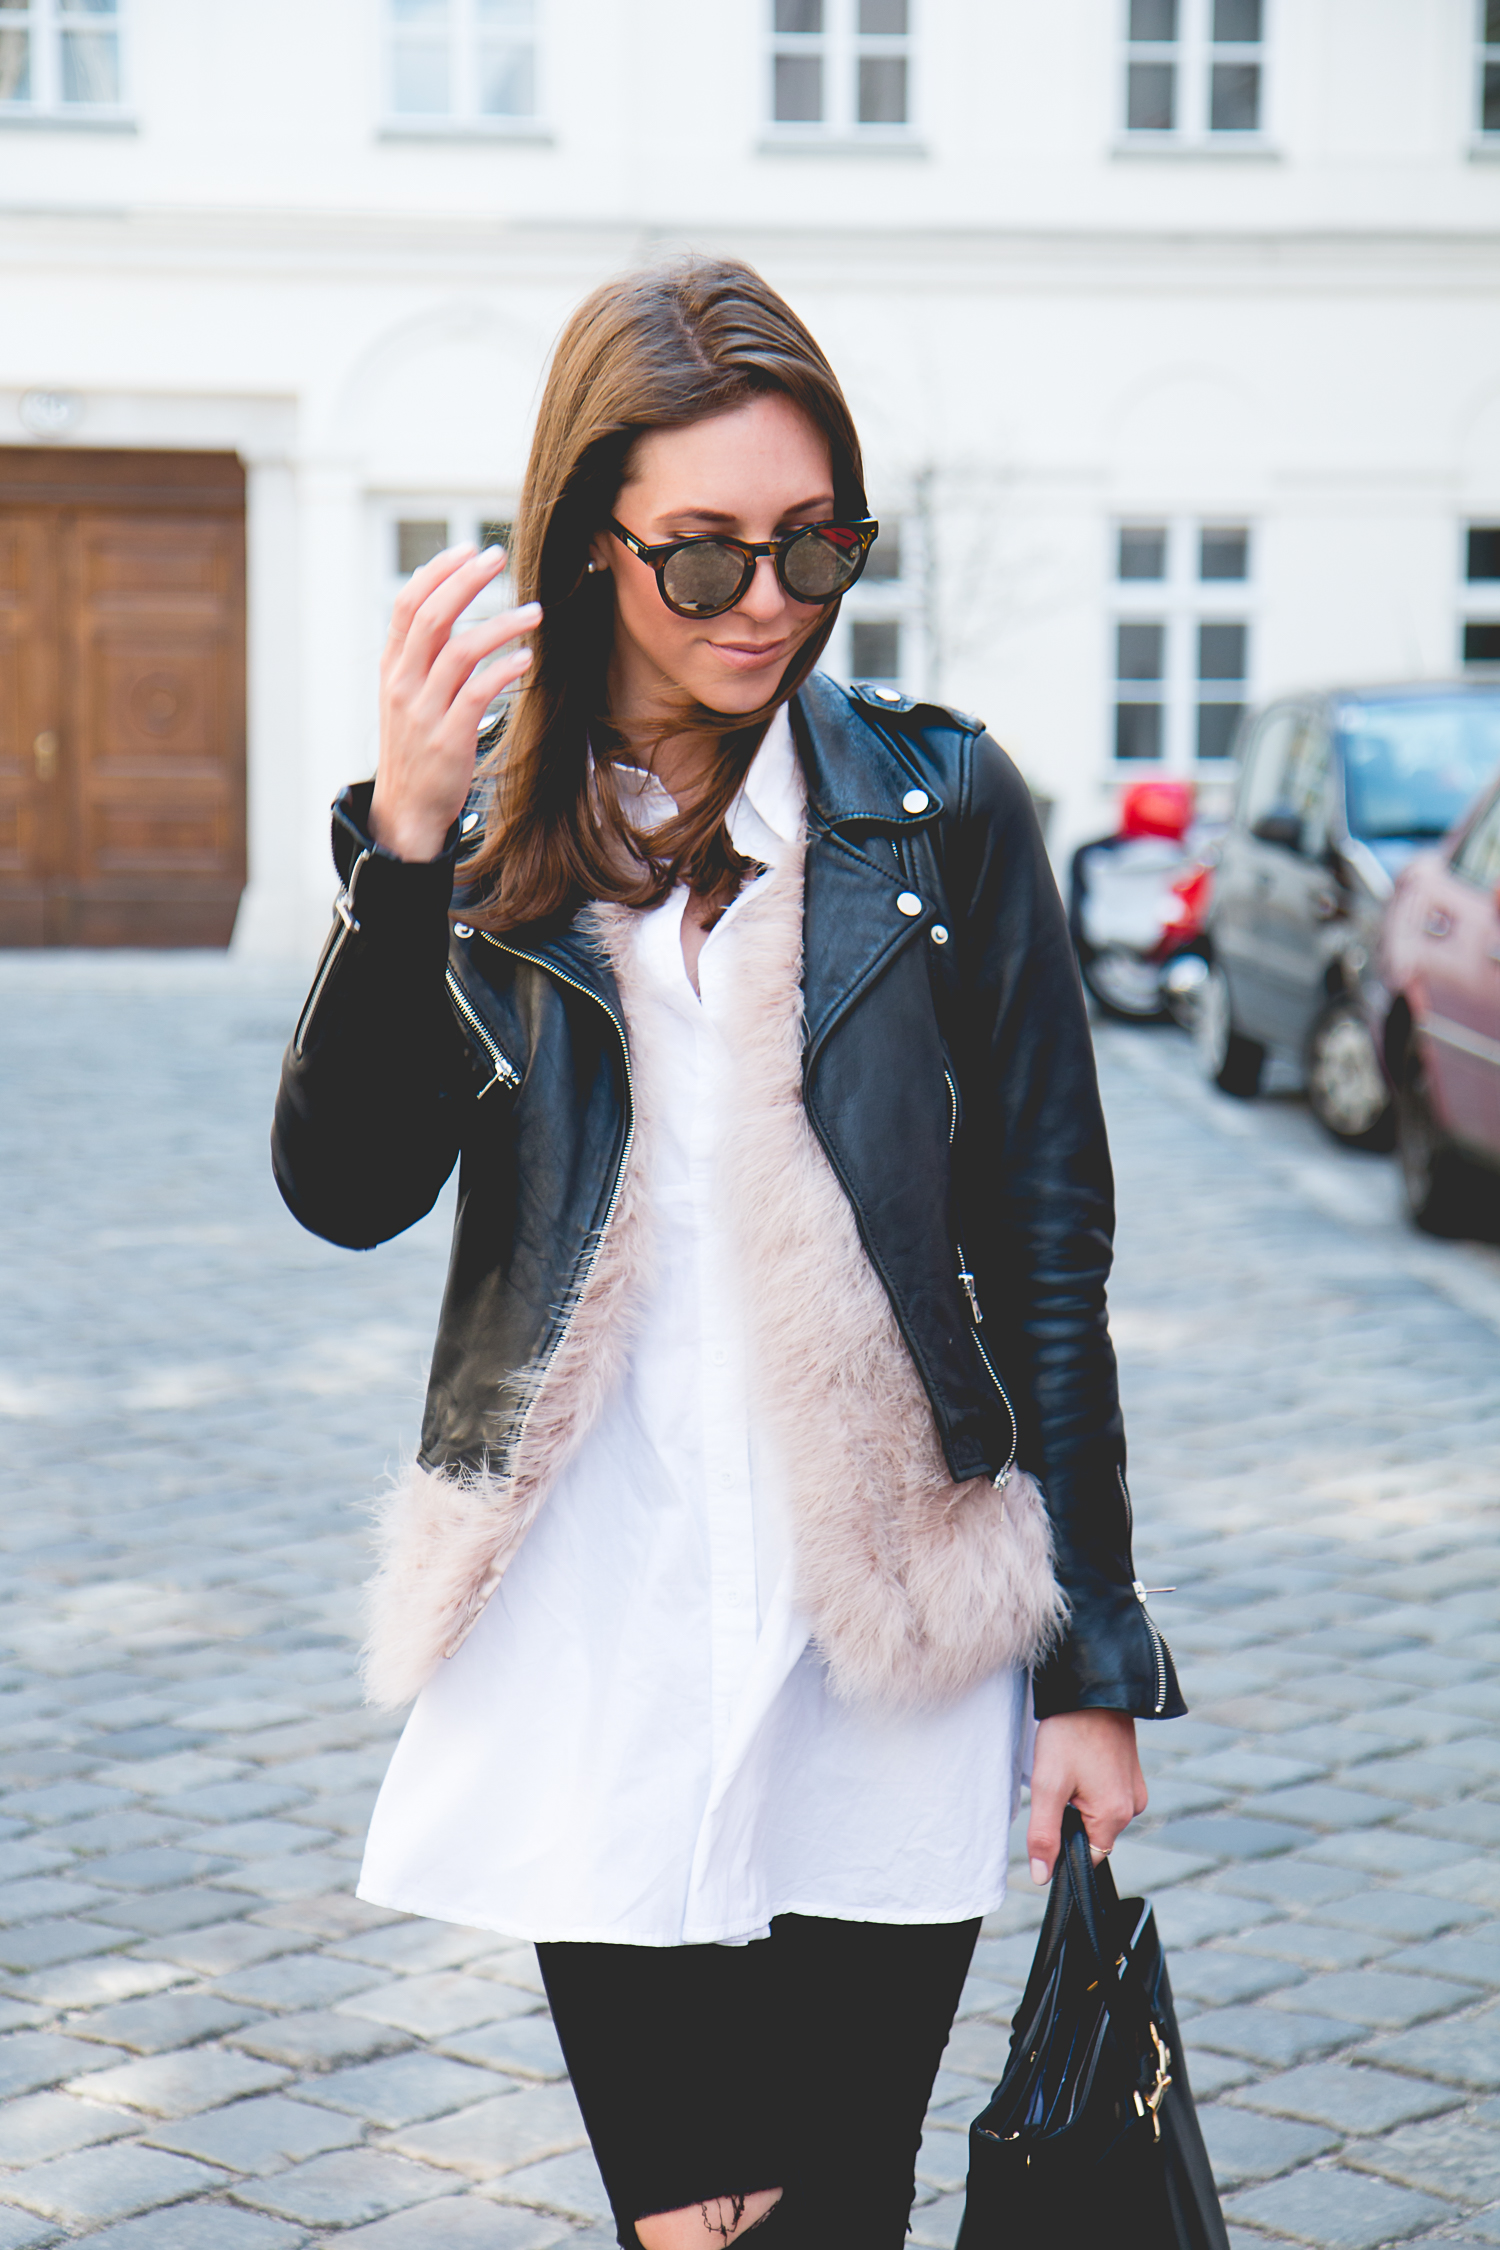 Fluffy-Vest-Gucci-Bag-1